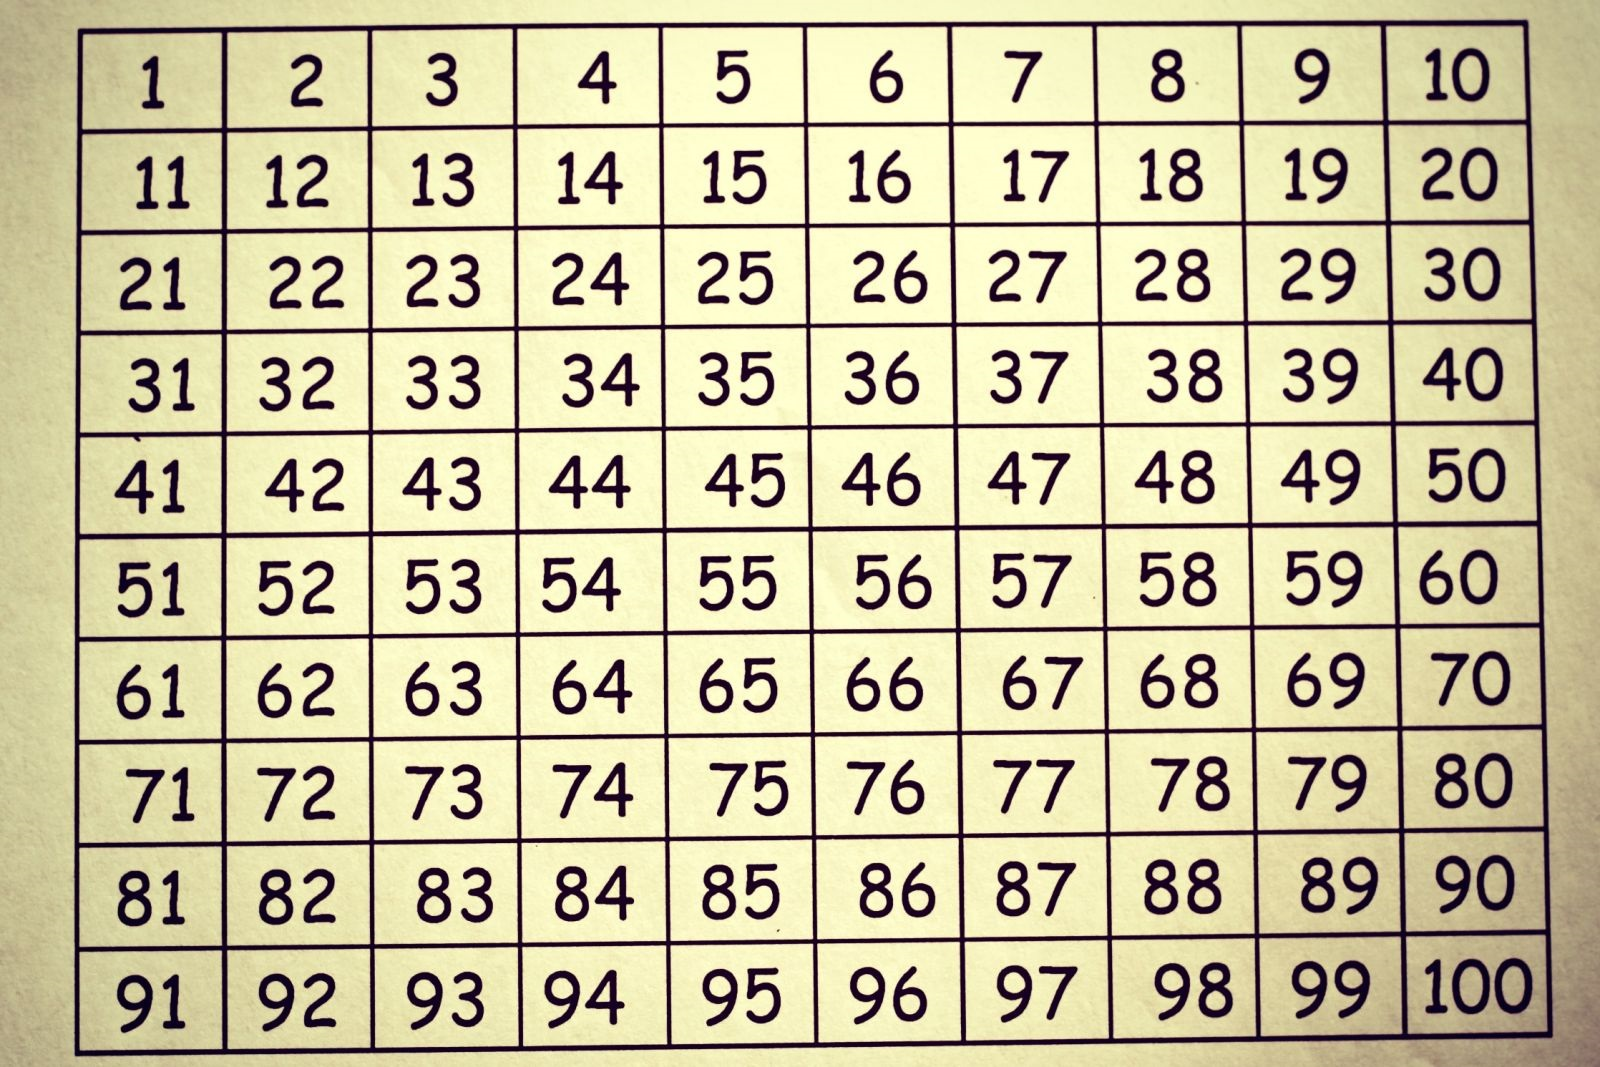 1-100-number-chart-formation